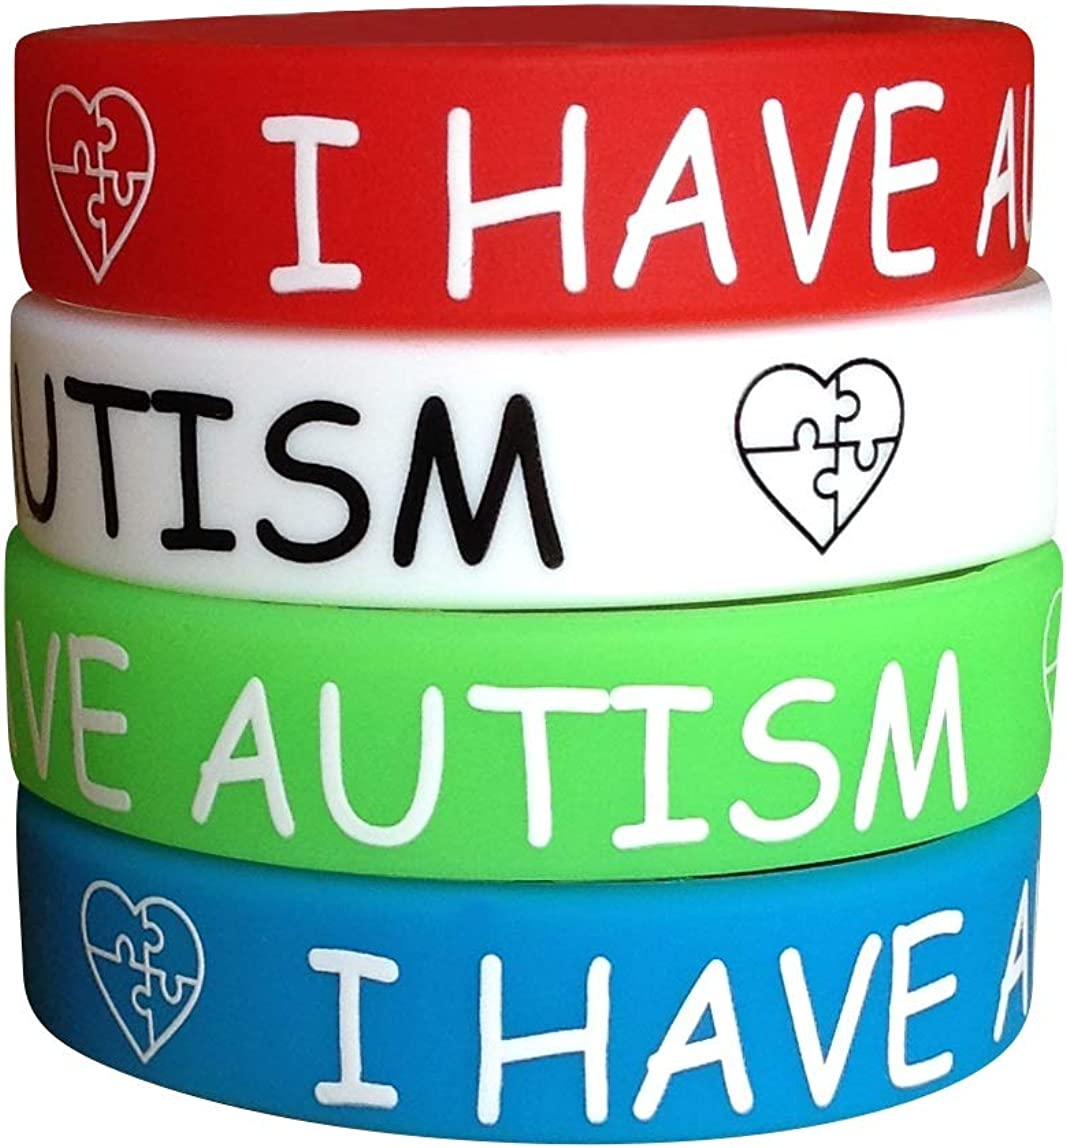 I Have Autism Silicone Bracelets for Teens Kids Child (4 Pack) ID Wristband Medical Alert